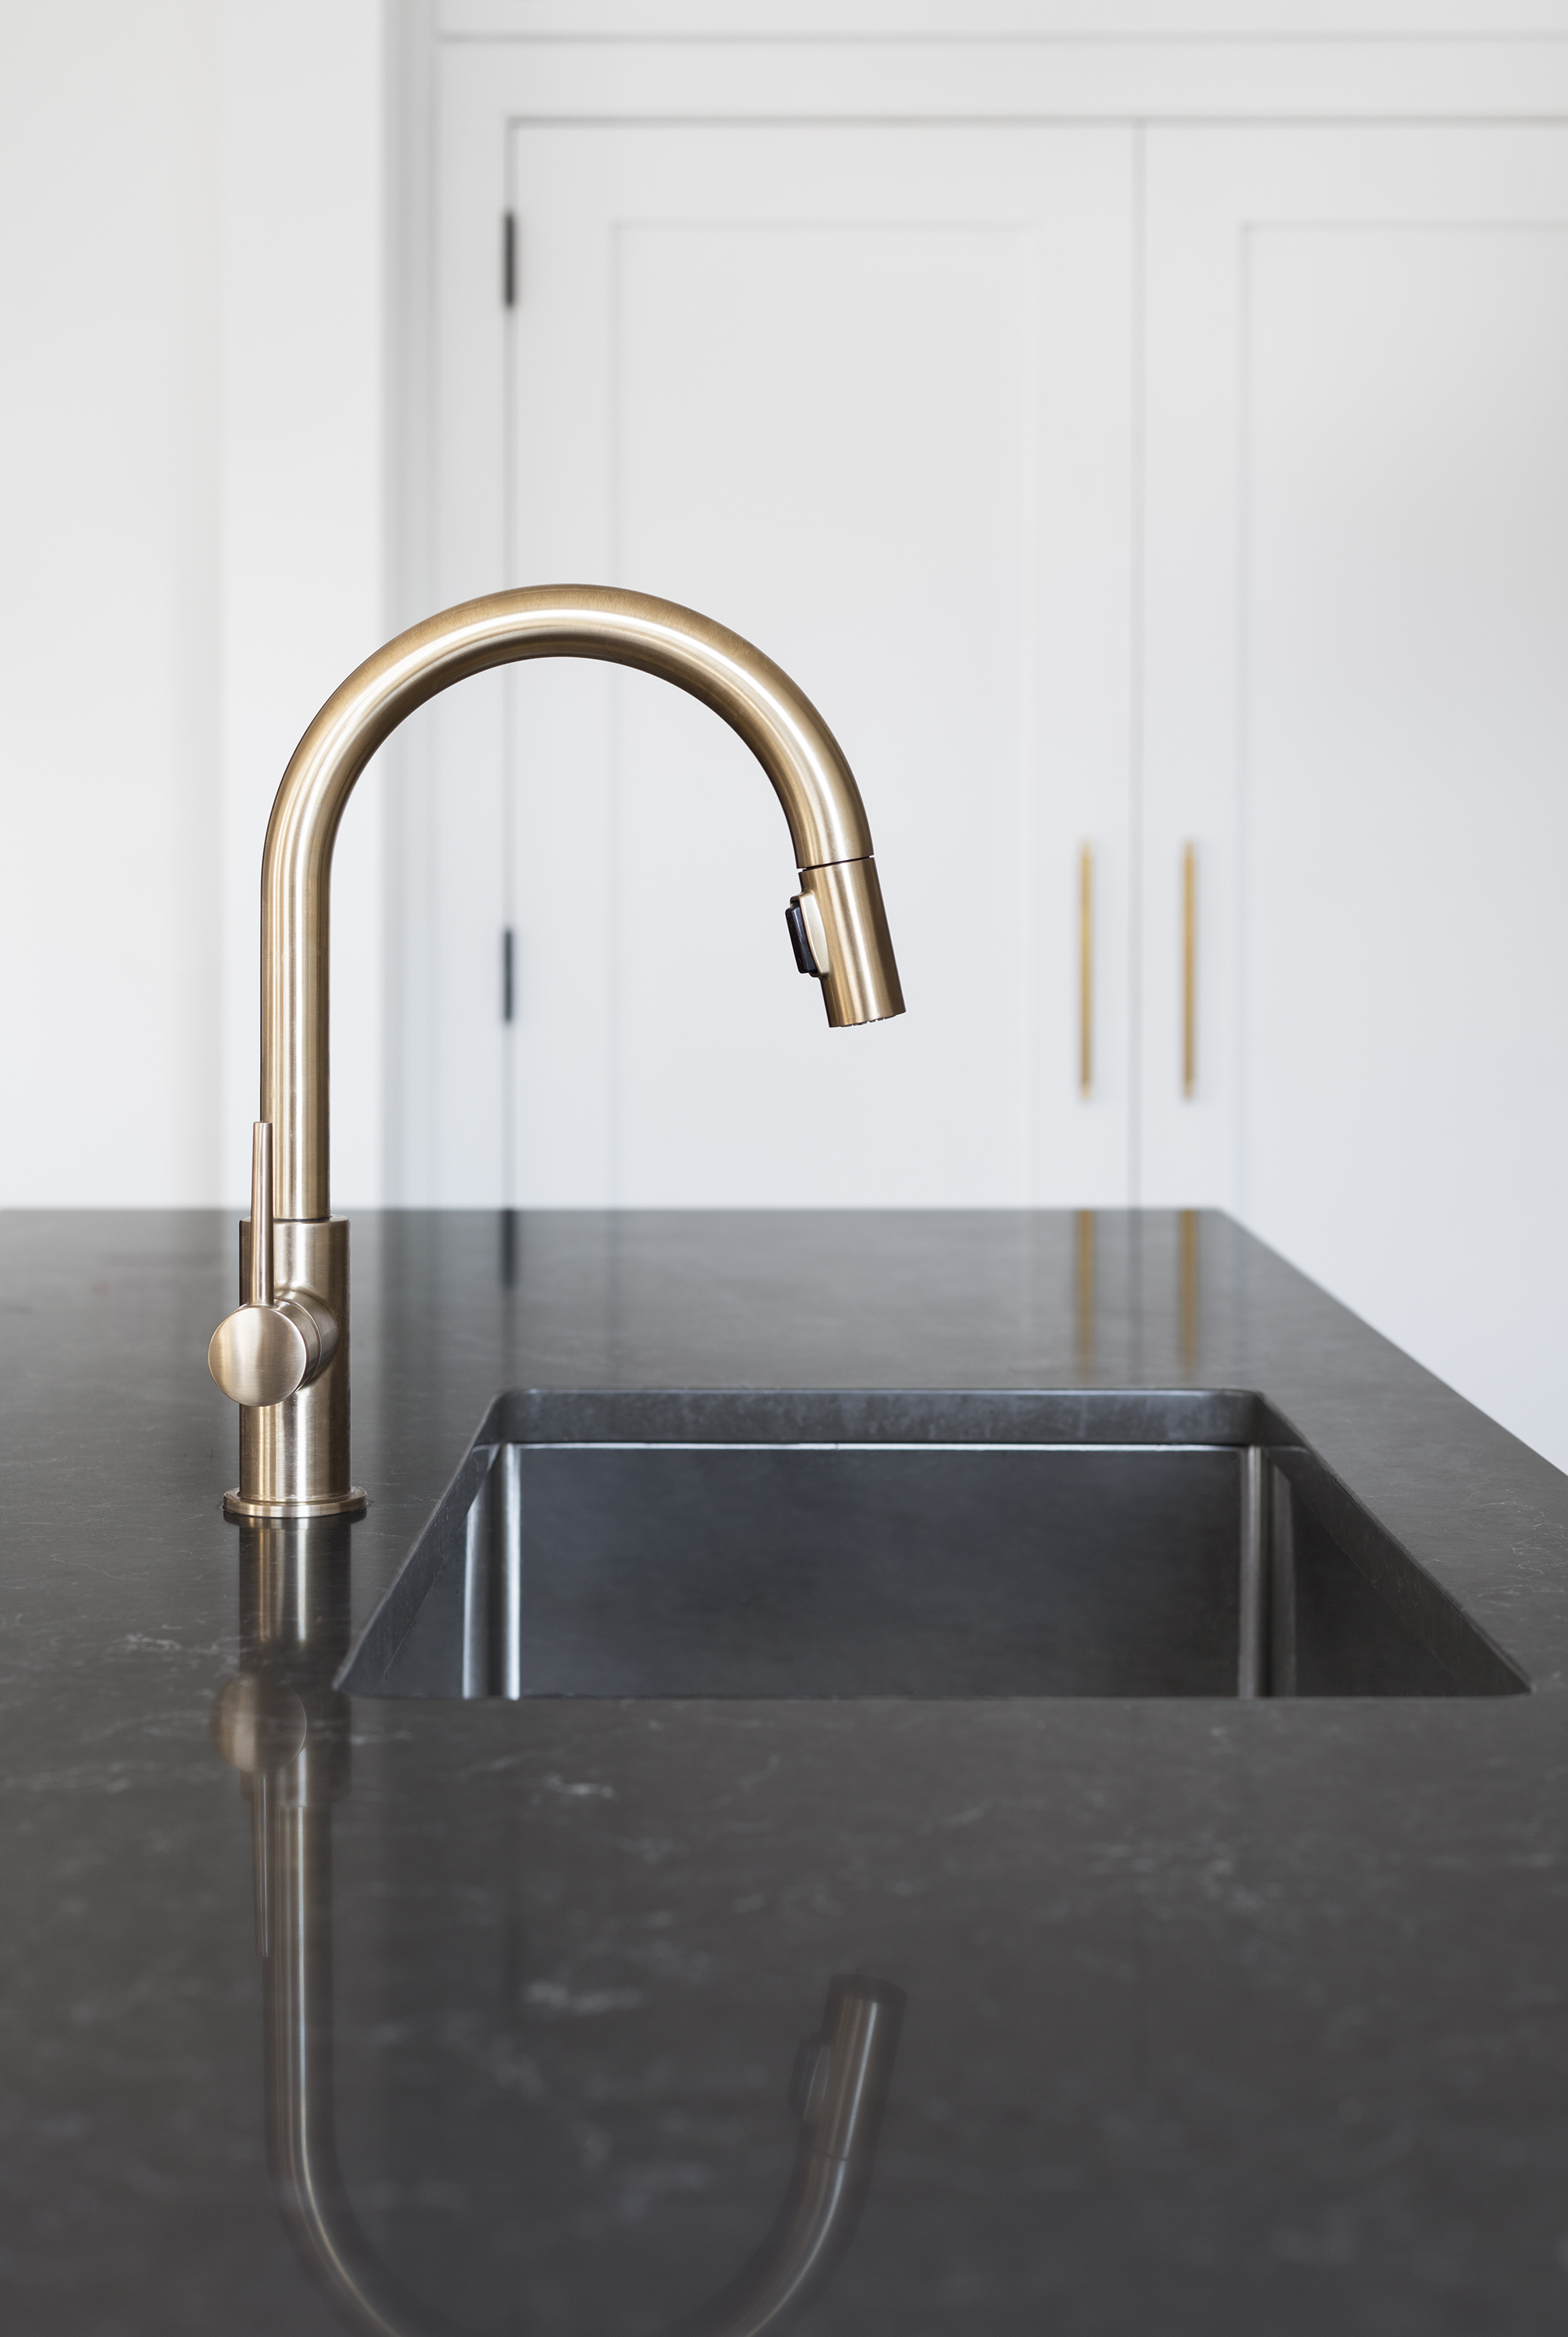 com photos definitions rinse of pre beautiful pictures spray delta wall transitional out htsrec silver kitchen manifest handle single pull cross mount trinsic faucet high